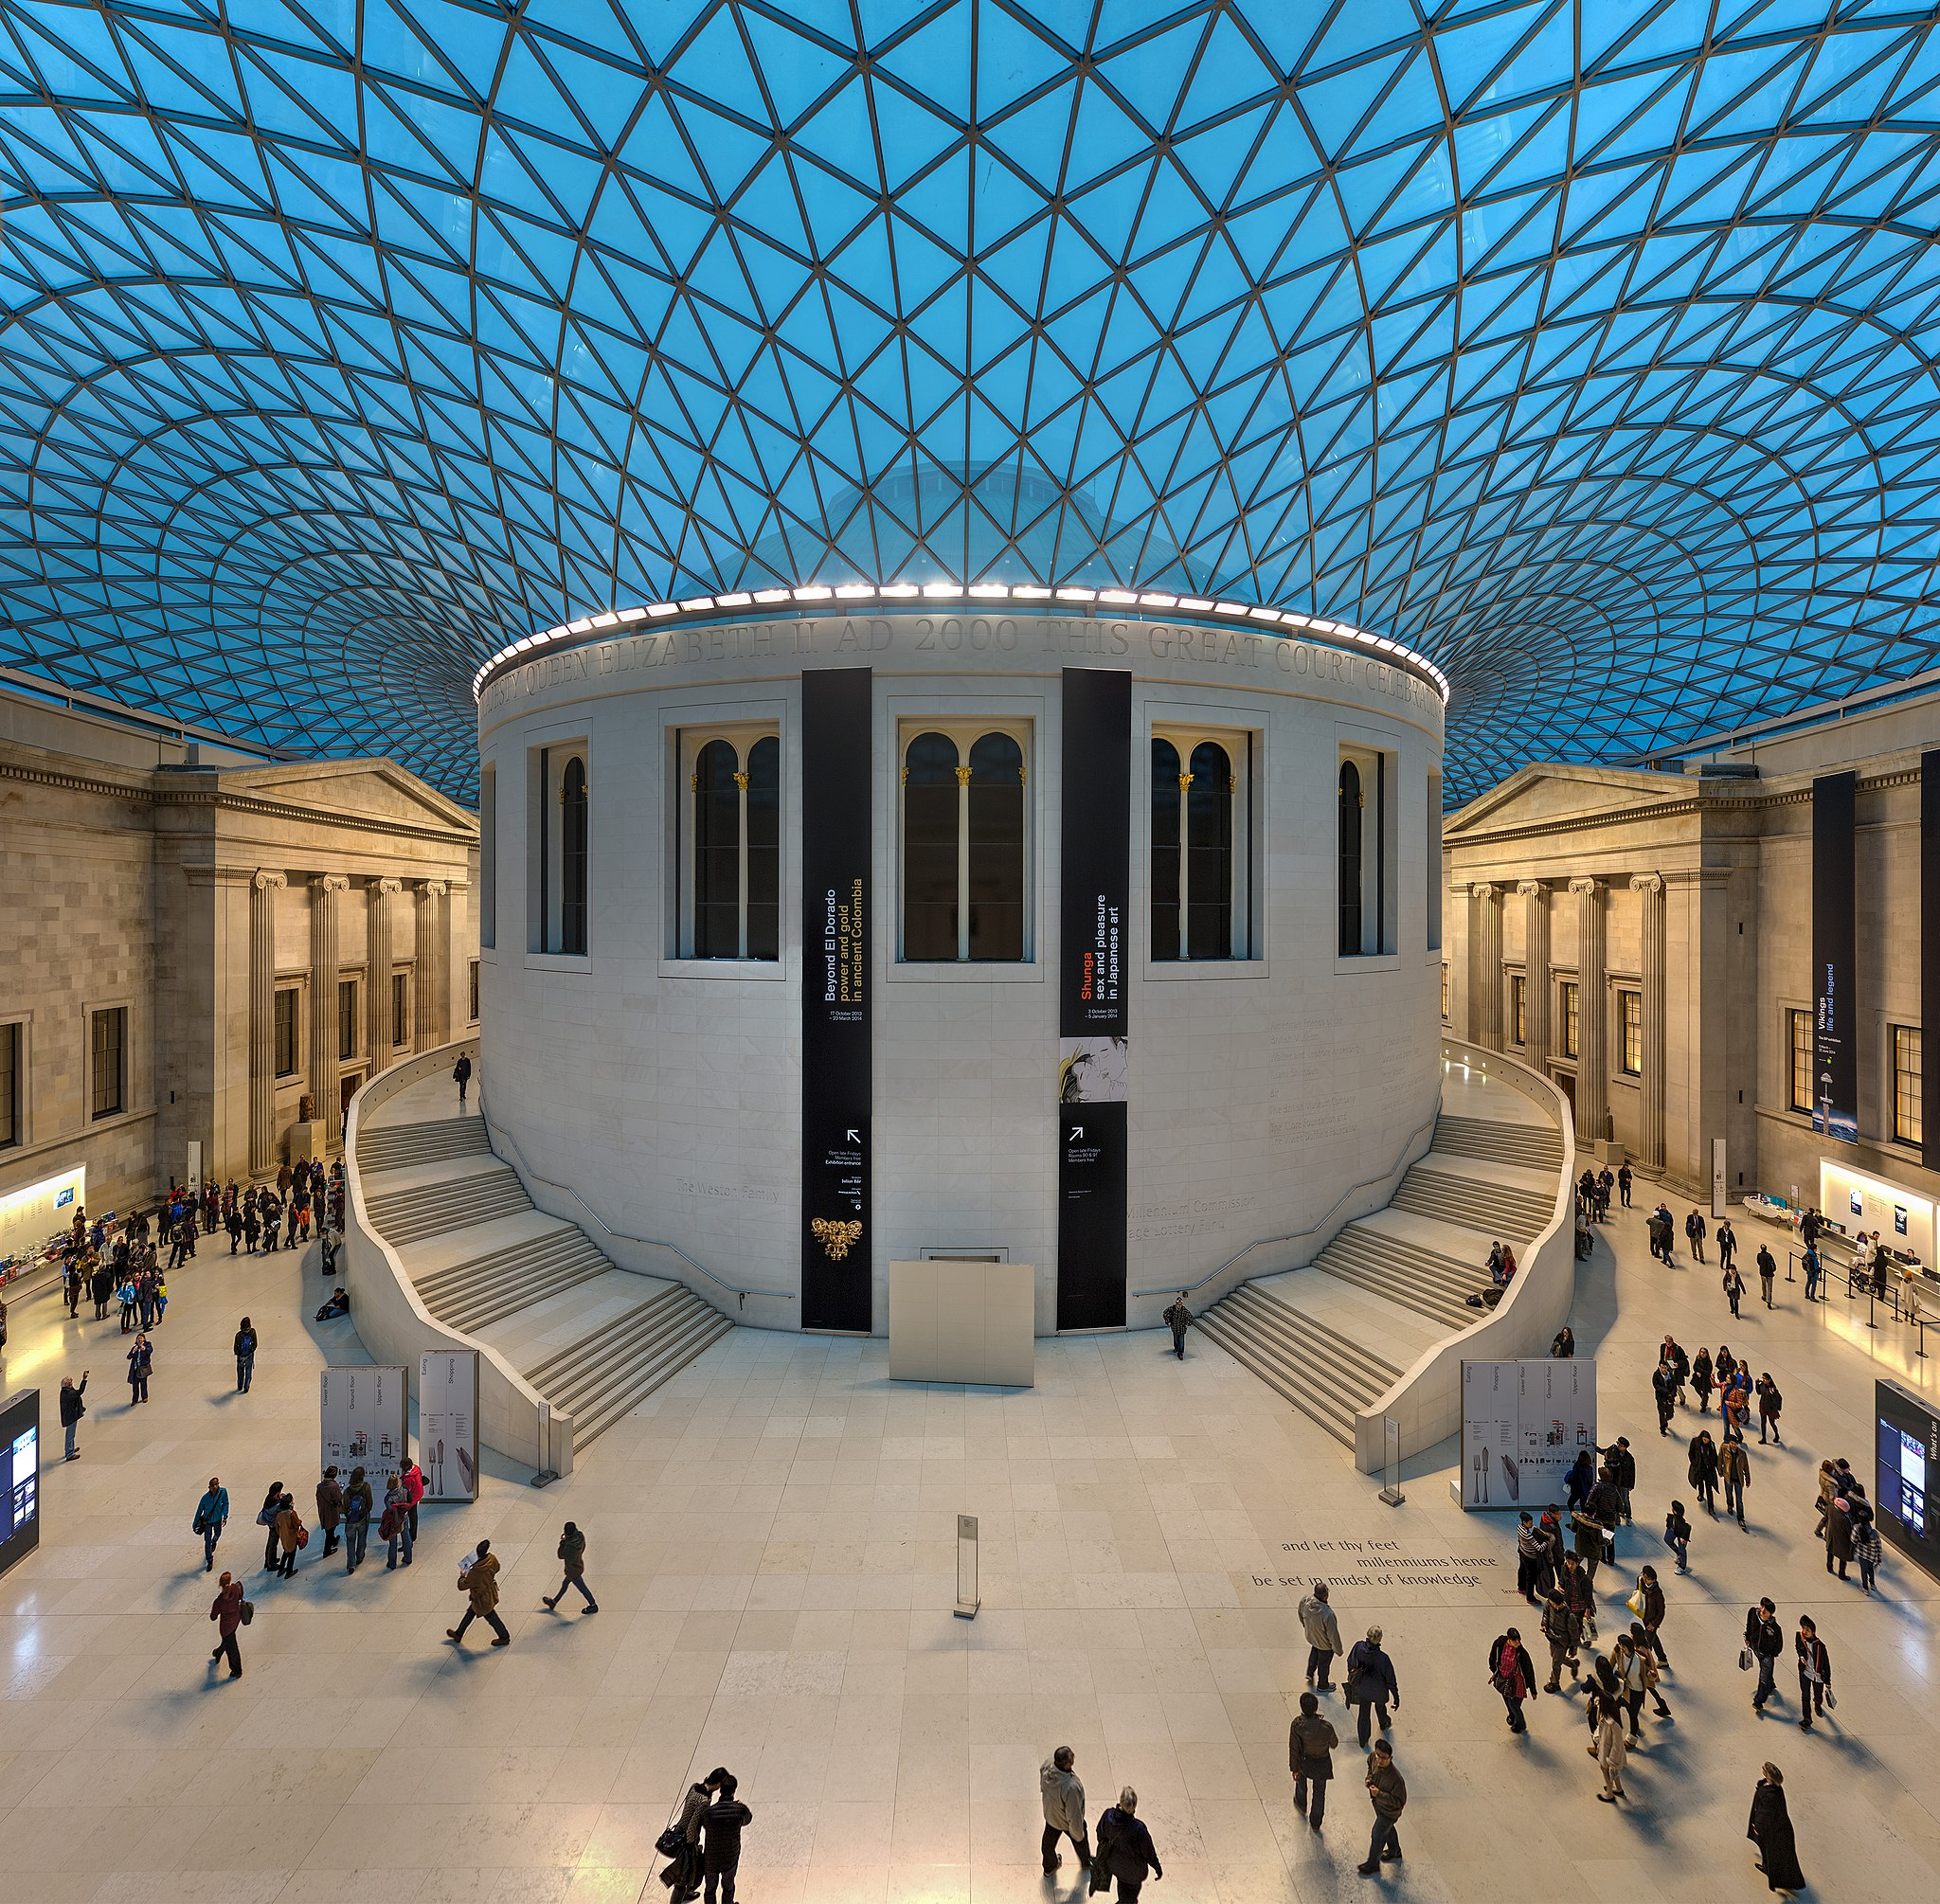 British Museum Great Court, London, UK - Diliff